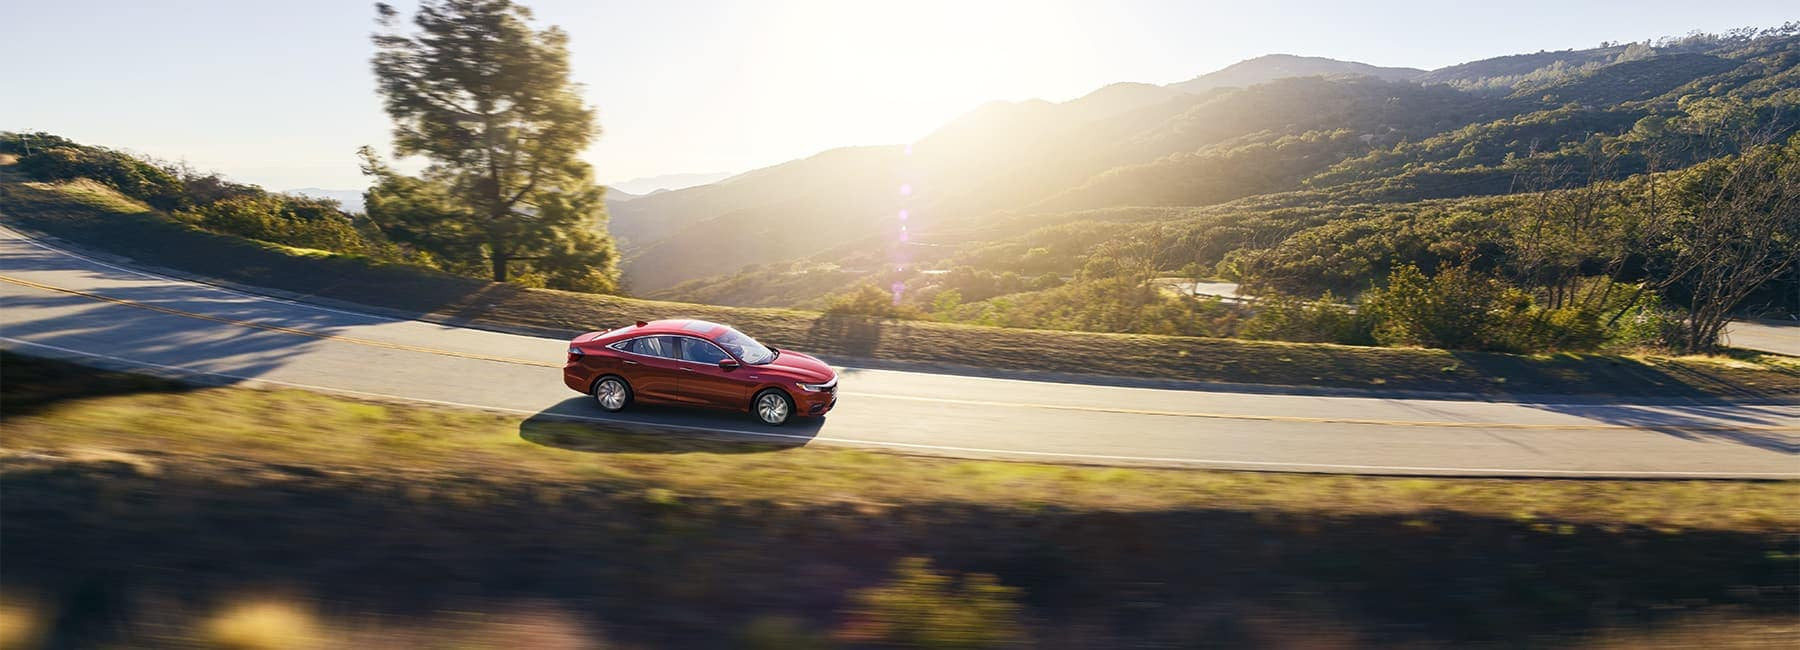 2021 honda insight driving in the mountains mobile